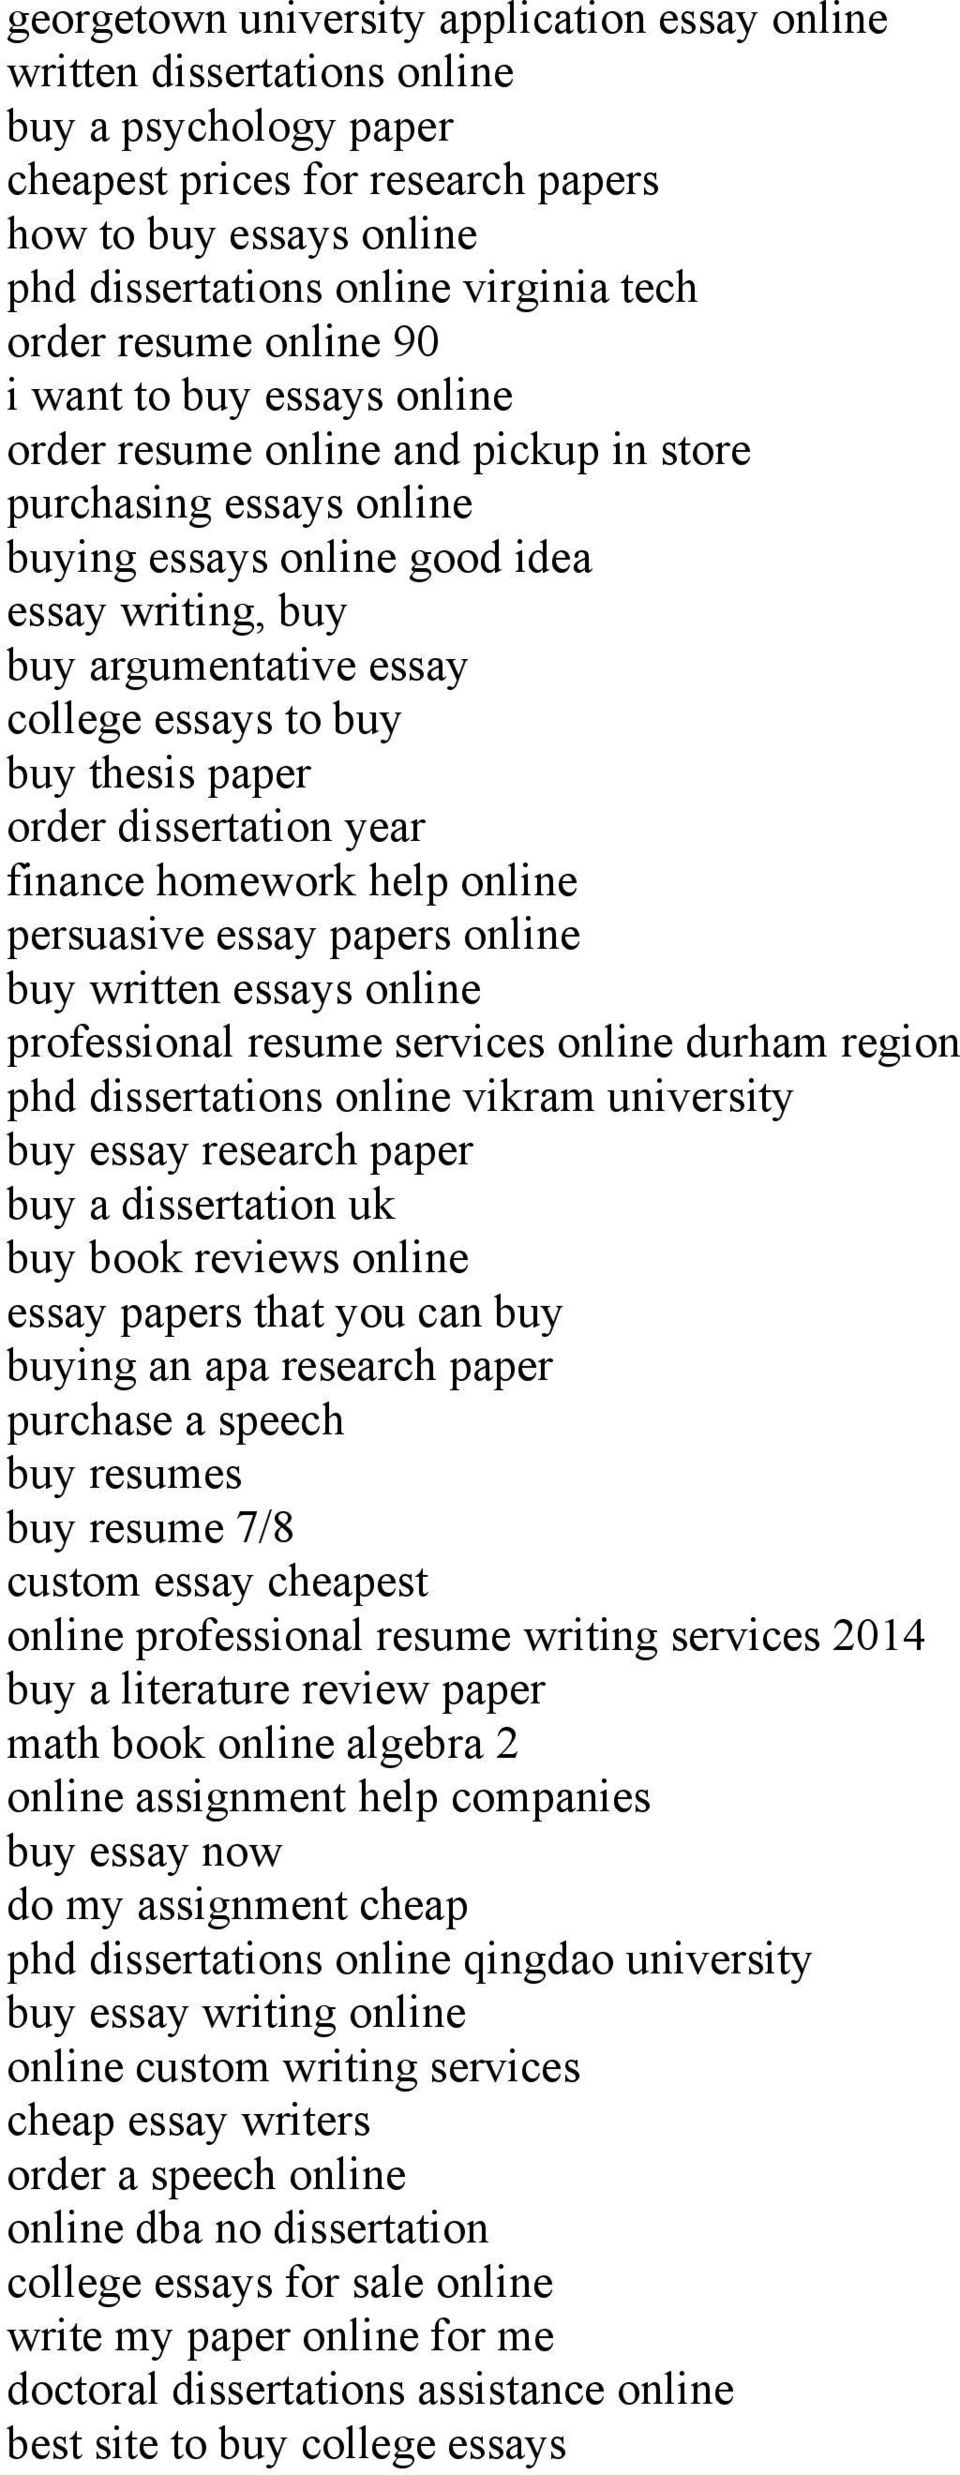 005 Buying Researchs Online Reviews Page 4 Staggering Research Papers Full